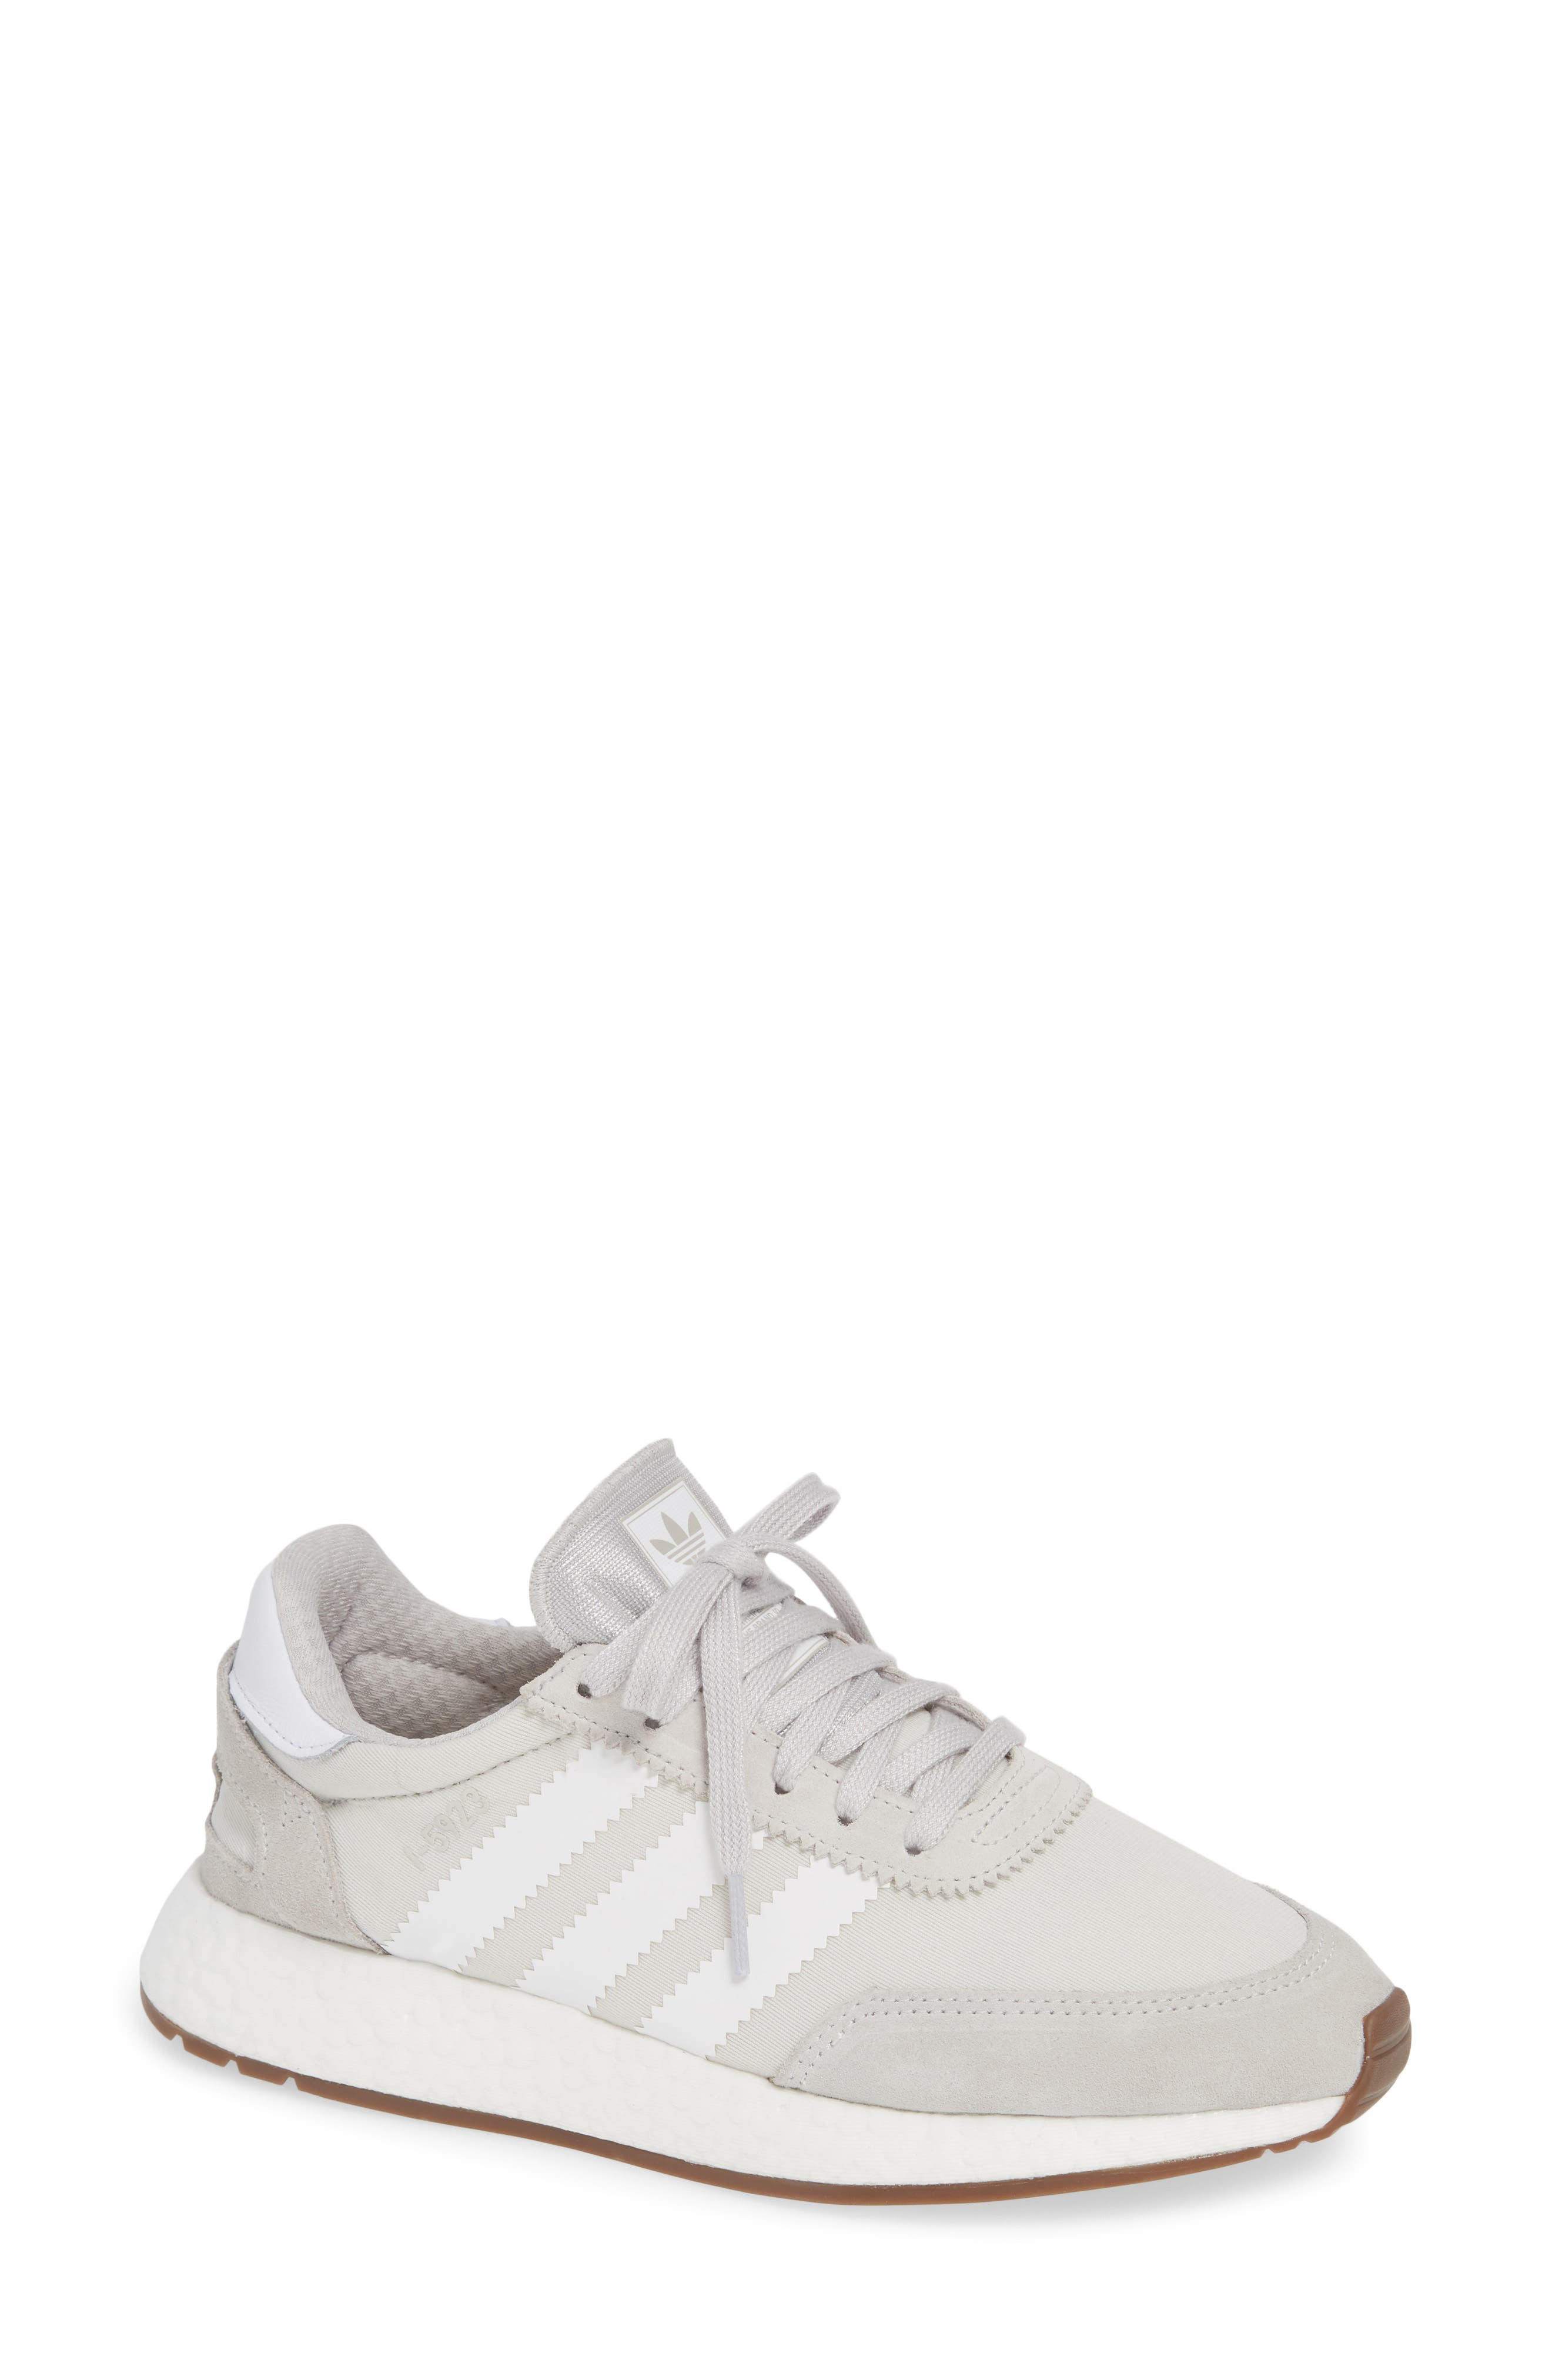 I-5923 Sneaker,                         Main,                         color, GREY ONE/ WHITE/ GREY FIVE